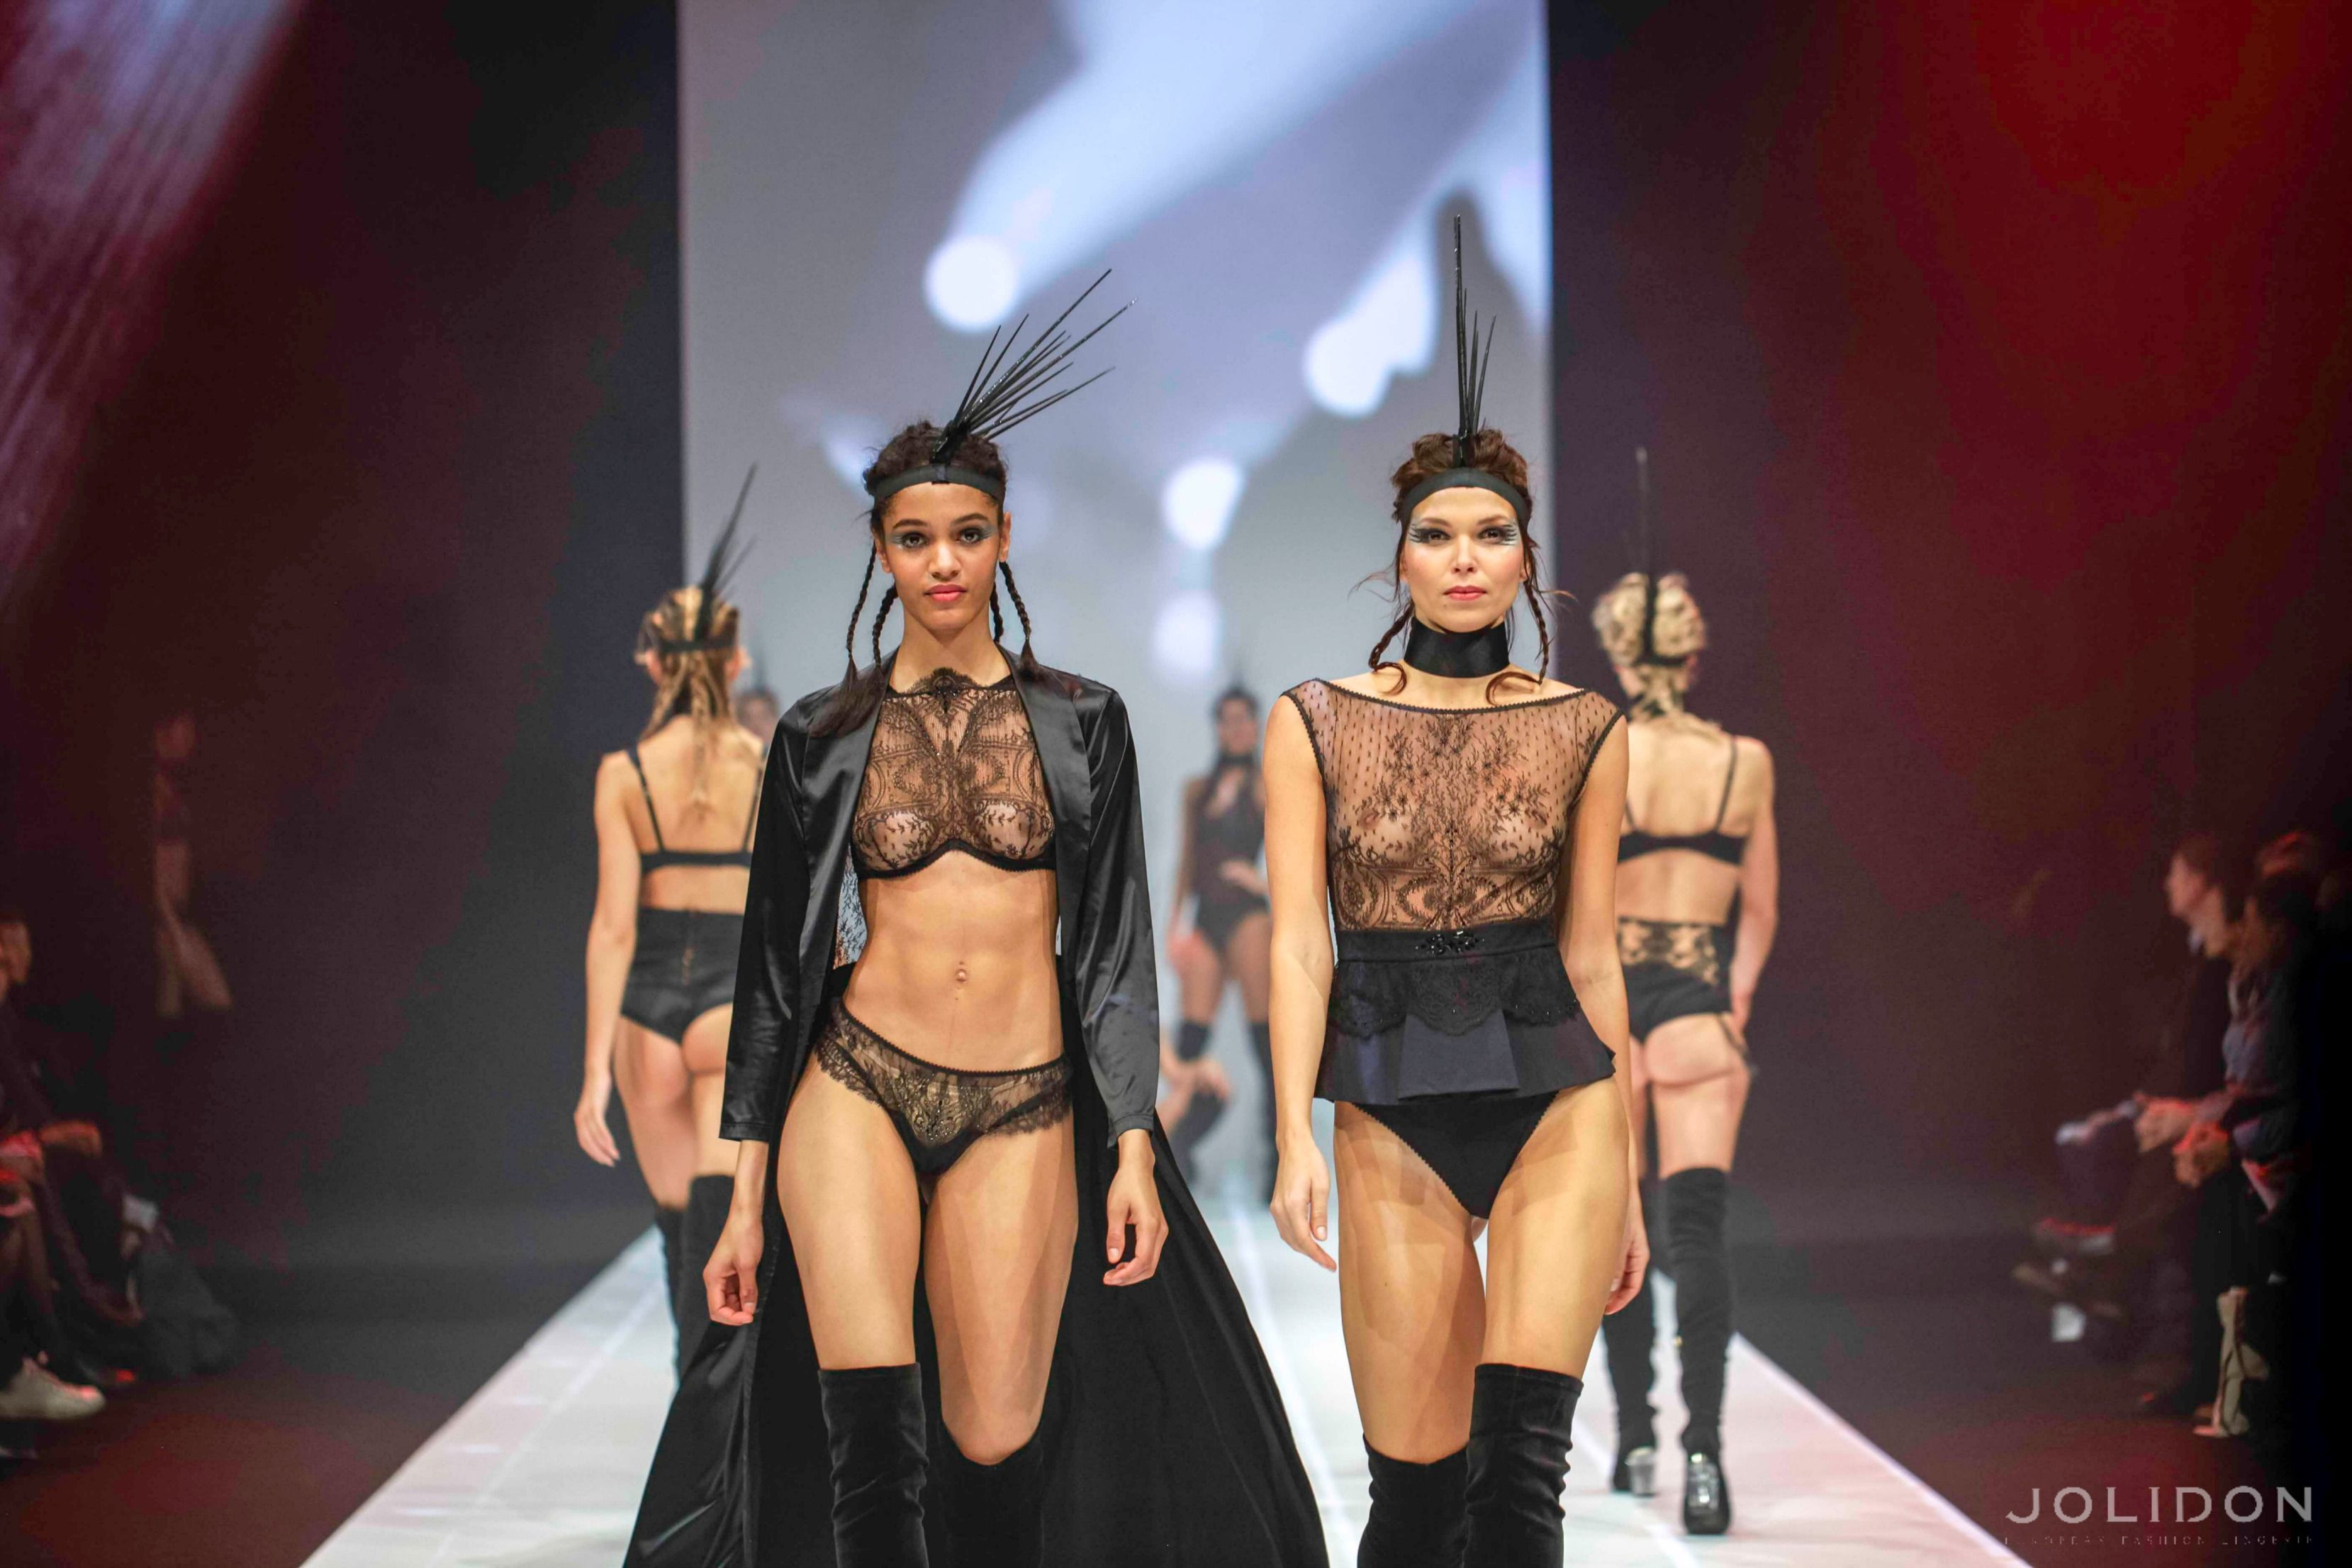 Salon De Lingerie Jolidon At Salon International De La Lingerie Paris 2018 New